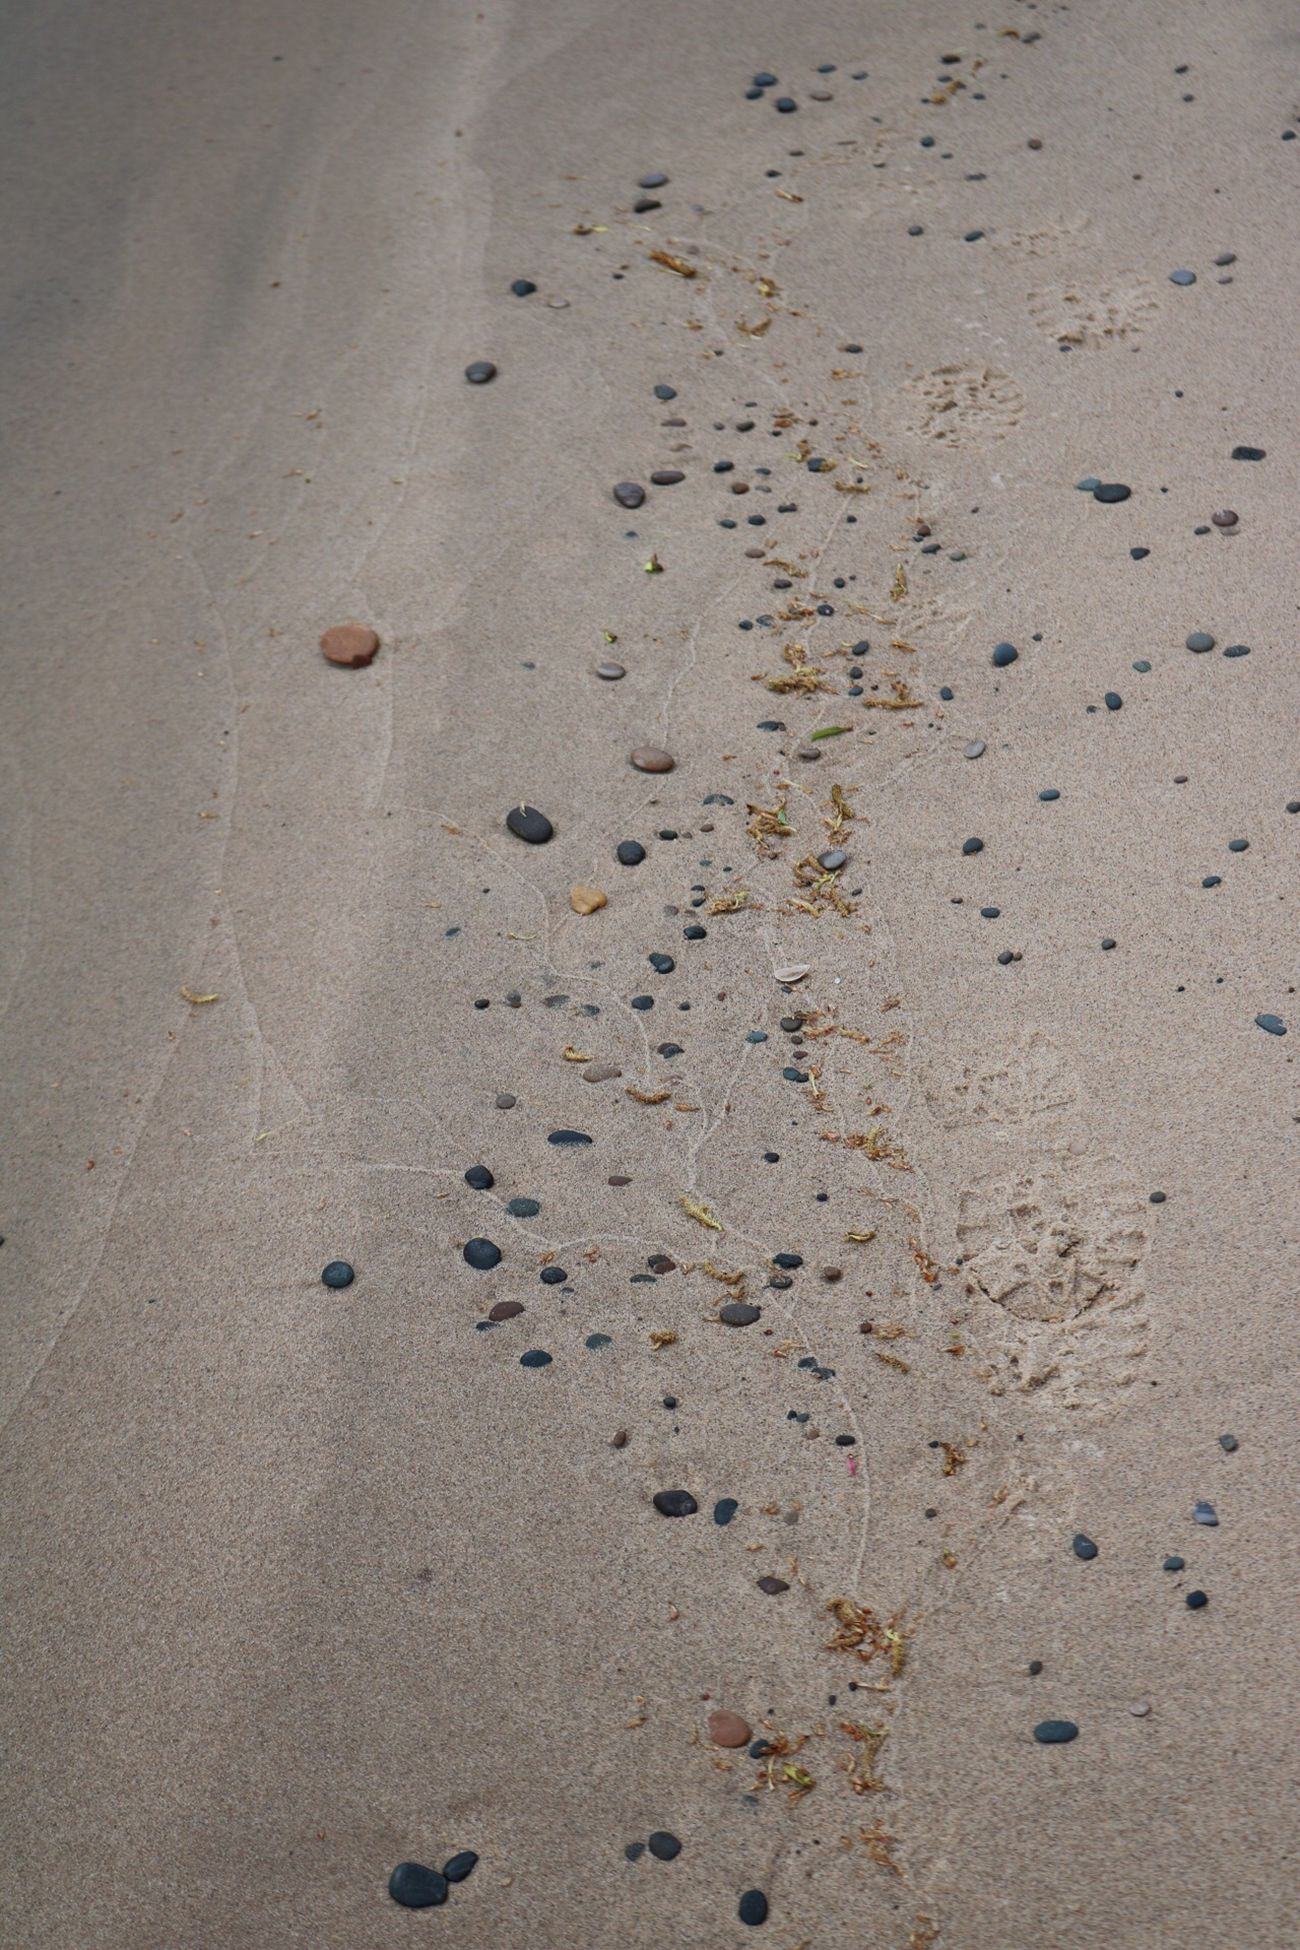 Pebbles On A Beach Sand Beach FootPrint Paw Print Animal Track Outdoors Day Nature Track - Imprint No People Close-up